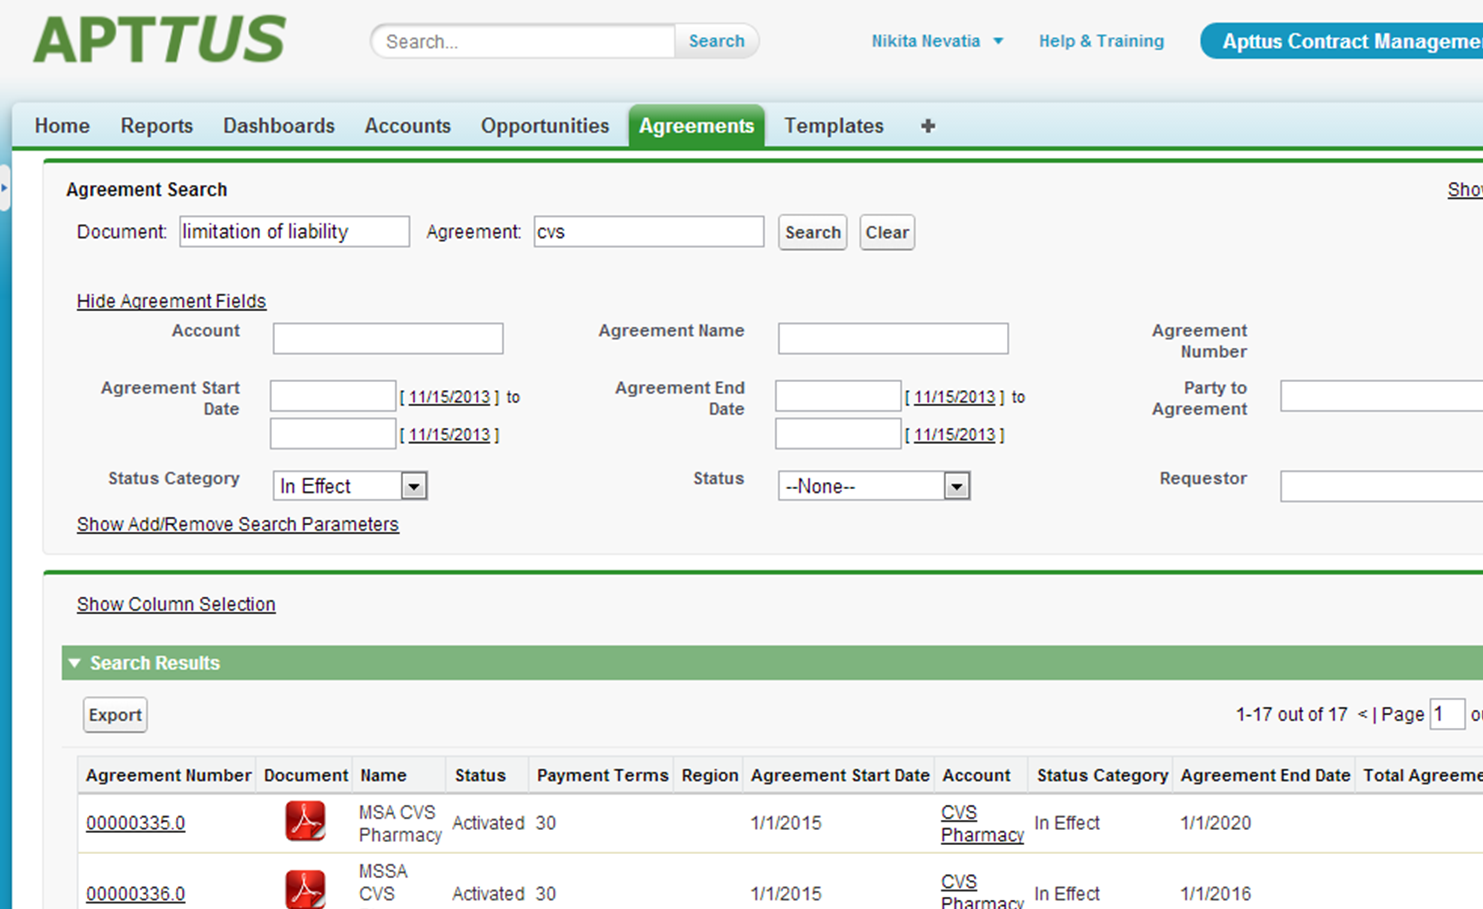 Advanced search options in Apttus